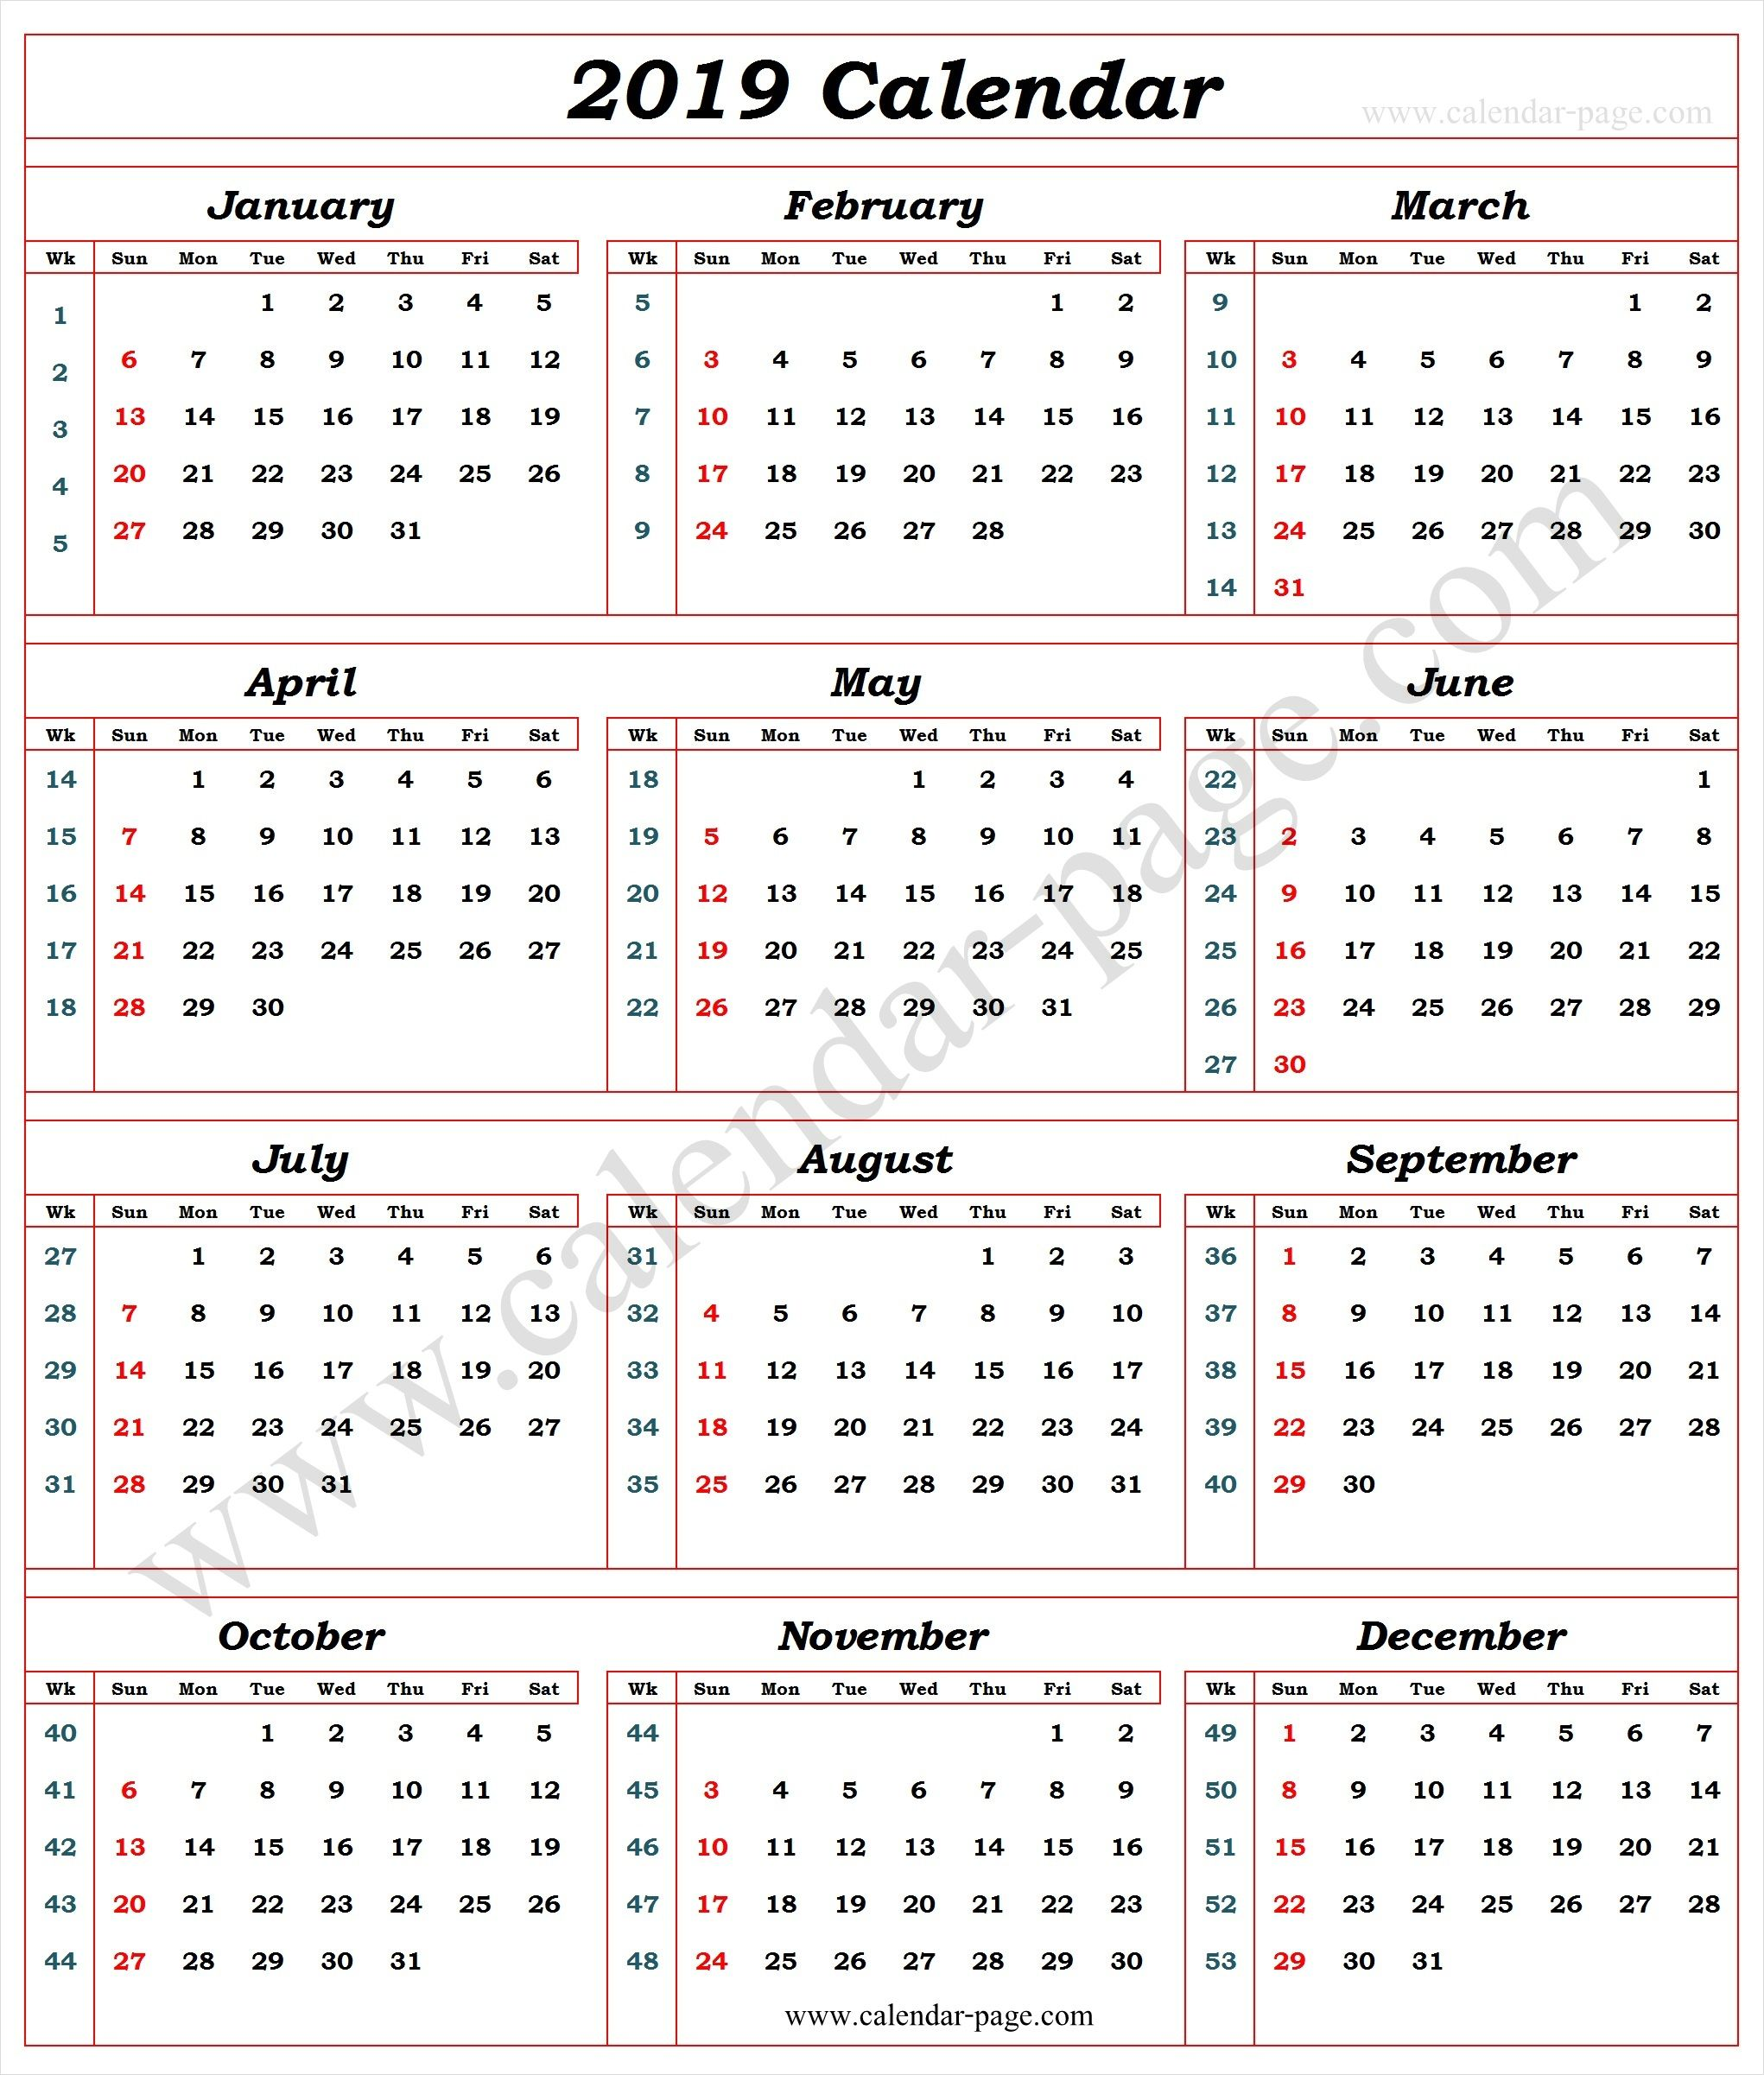 2019 Week Calendar Calendar 2019 With Week Numbers | 2019 Calendar Template